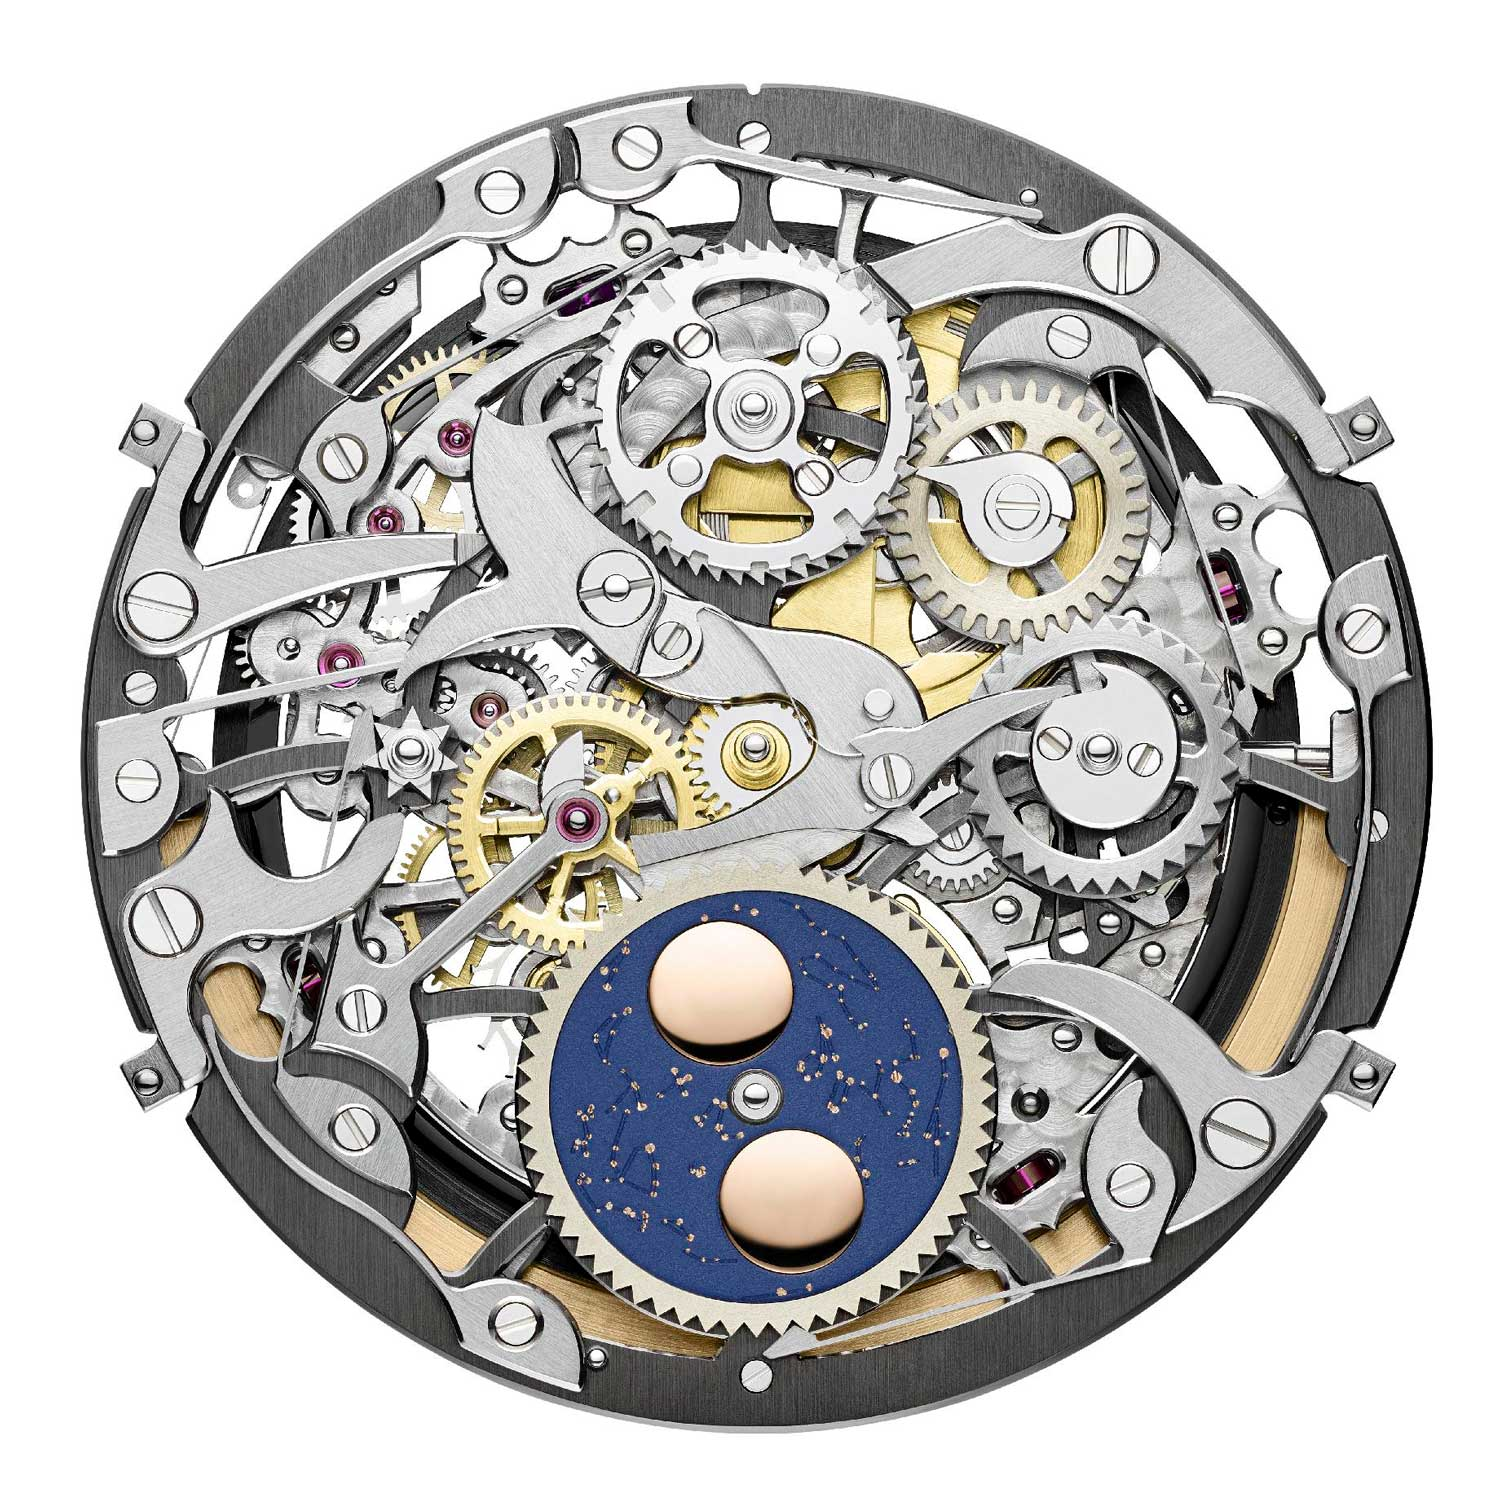 The extraordinary hand-skeletonization of Caliber 1120 in this watch includes hand bevelling of 16 internal angles on just the rotor alone.